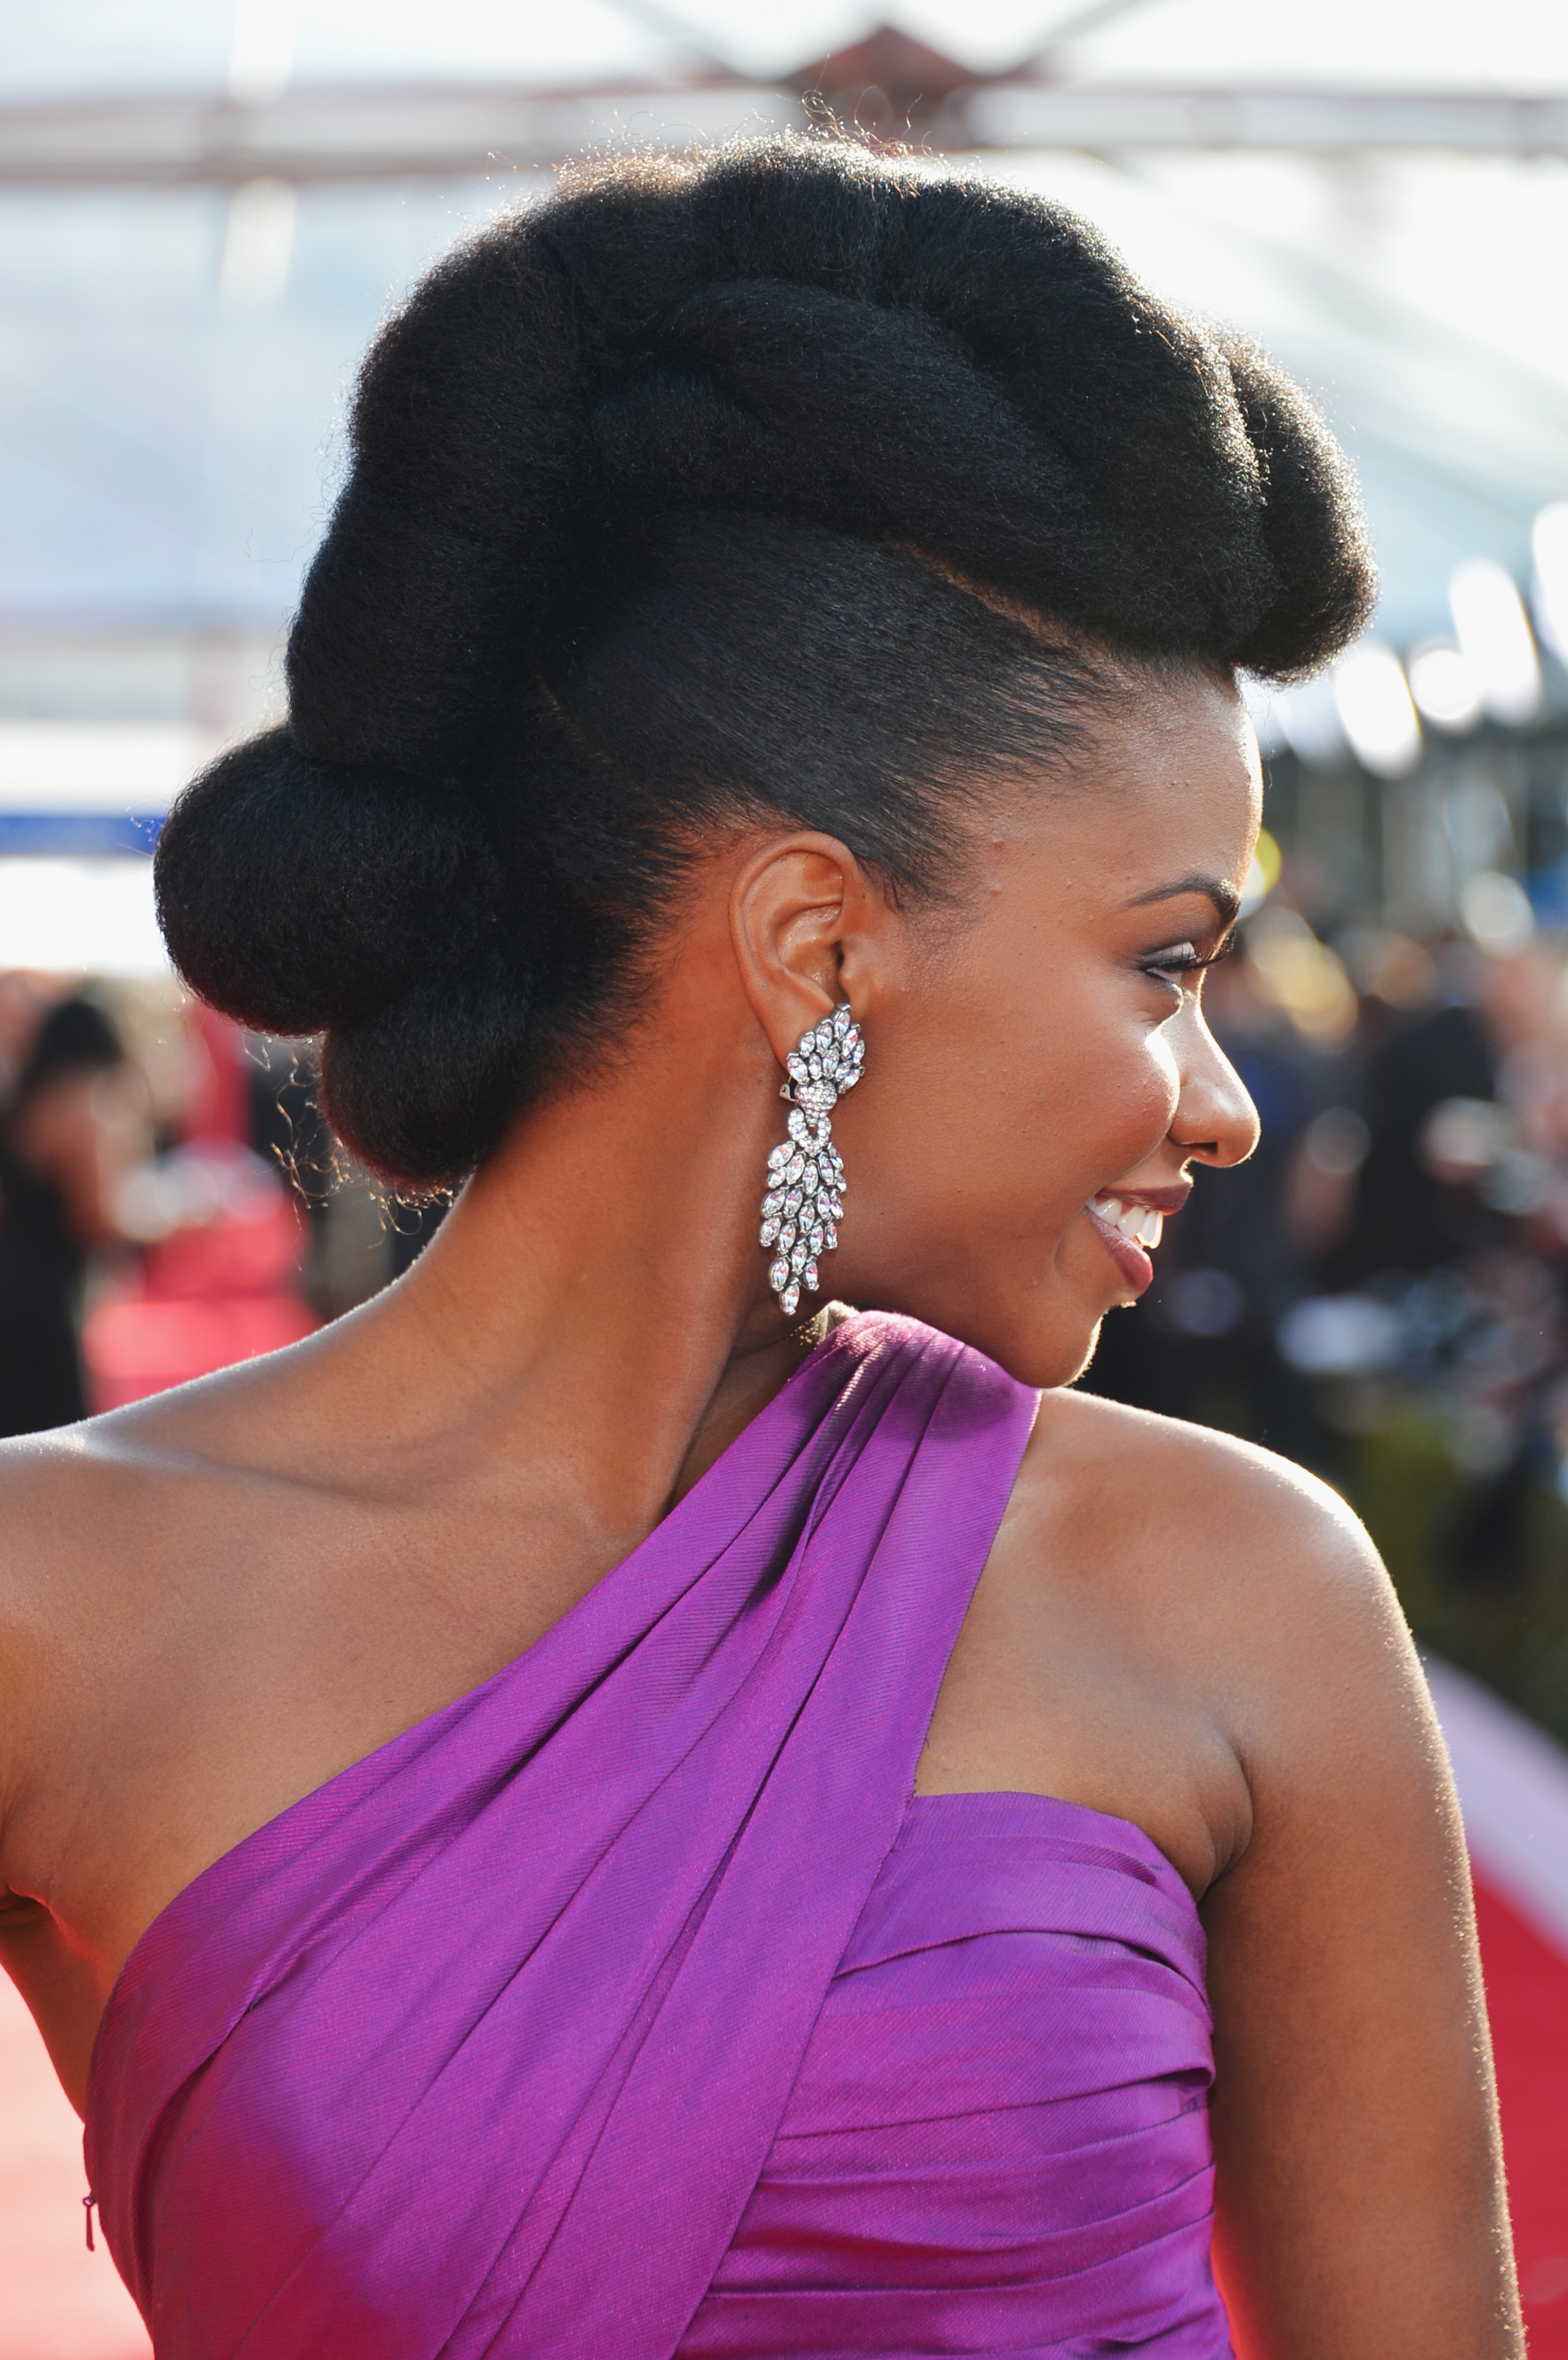 Hair Styles For Natural Black Hair 25 Easy Natural Hairstyles For Black Women  Ideas For Short .